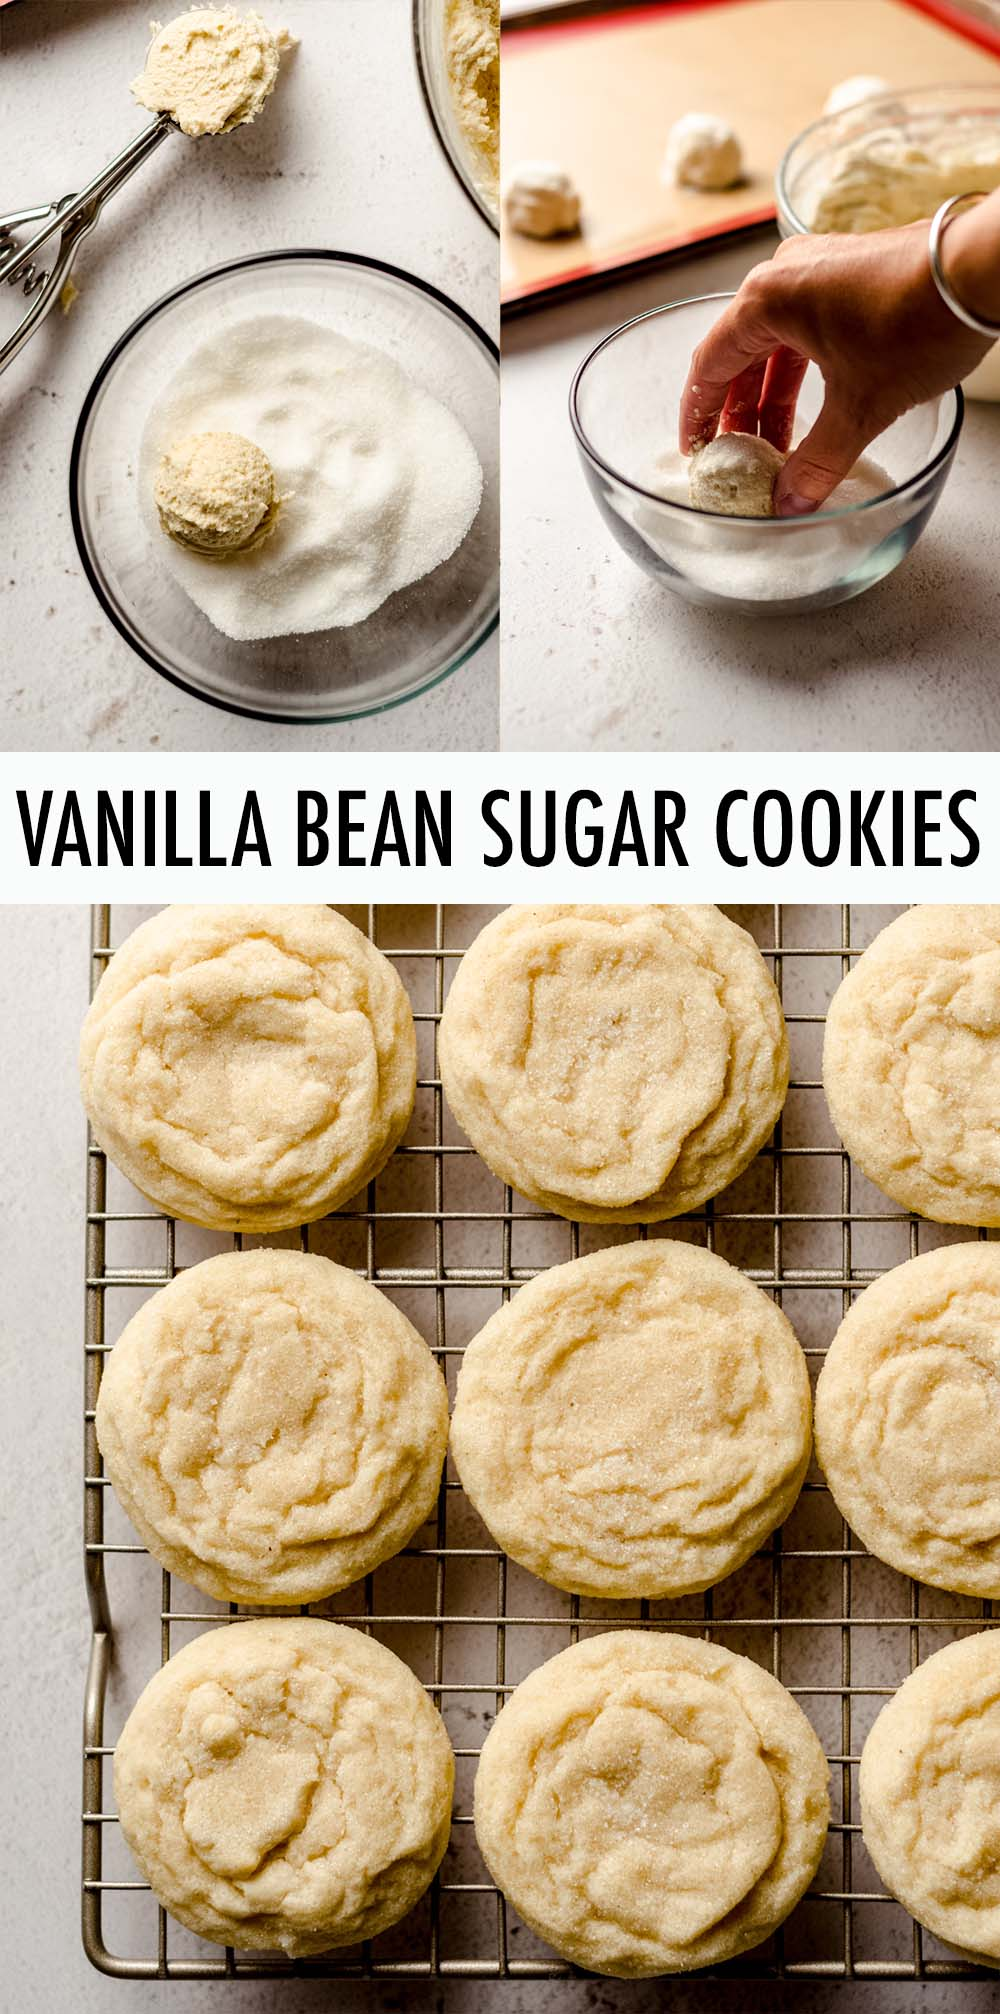 Pillowy soft and chewy sugar cookies bursting with fresh vanilla flavor and dusted with a sweet sugar coating.